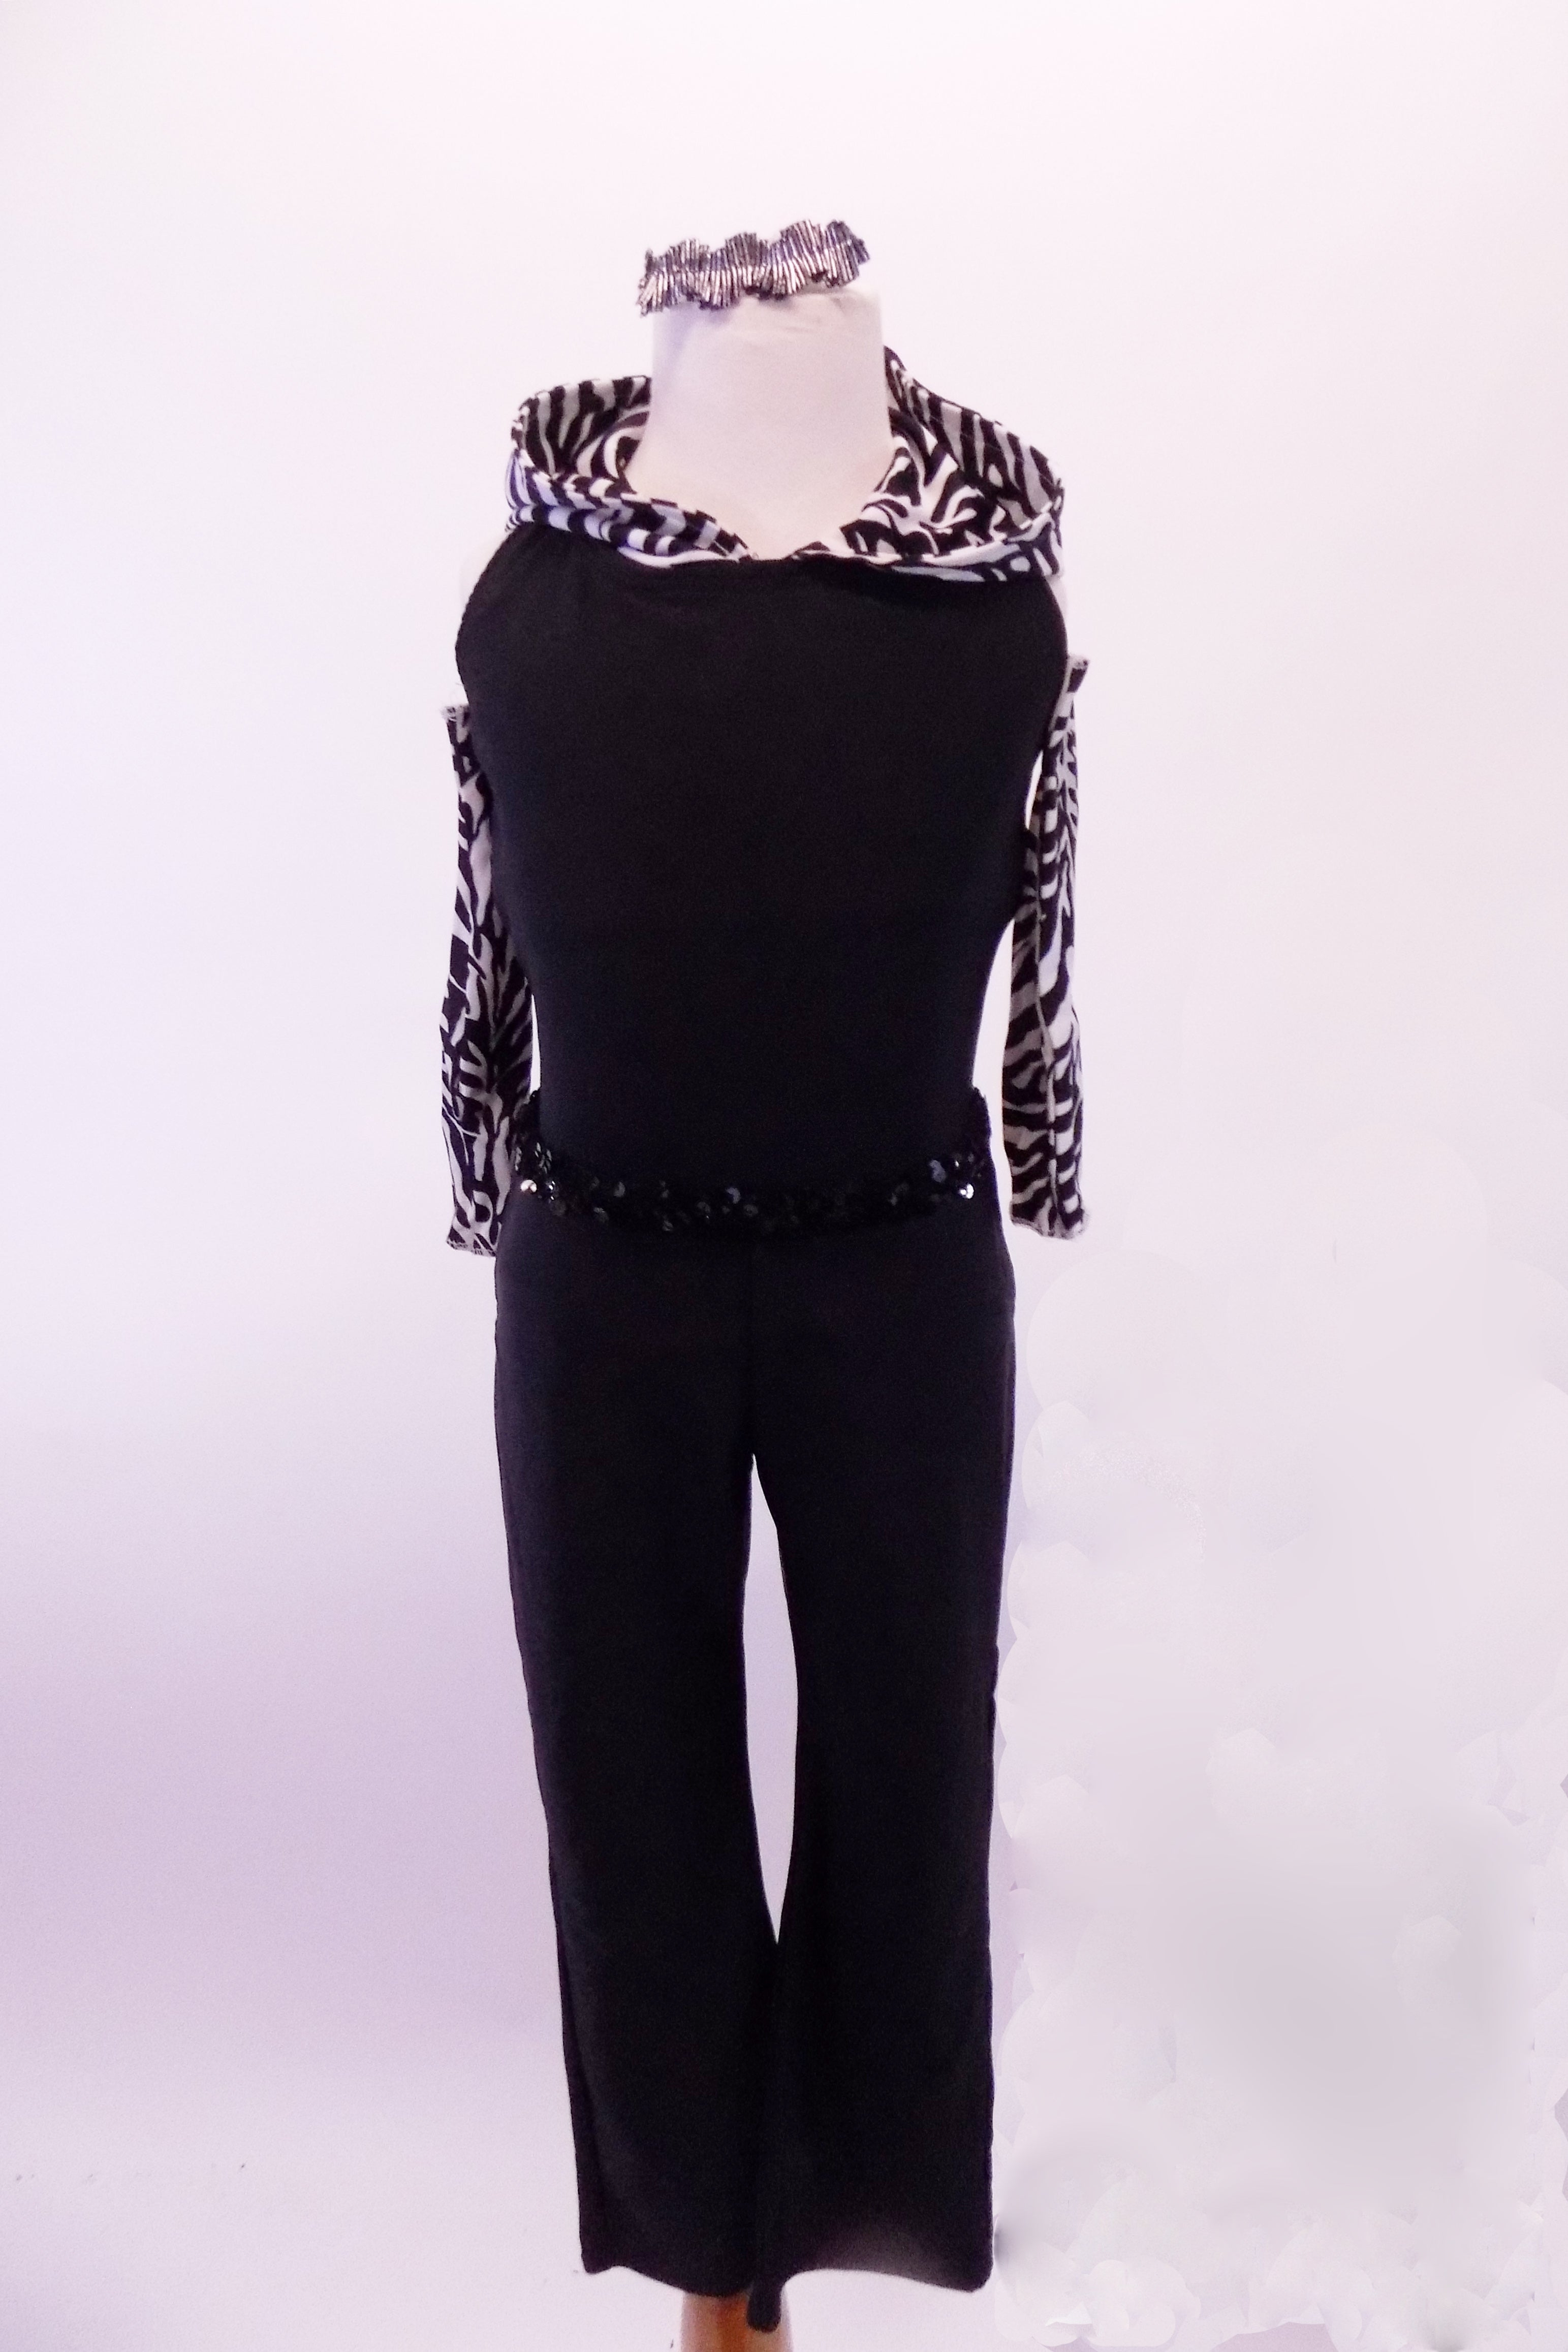 Zootopia inspired black halter collar top has zebra print collar and hood. The matching black pants have a sequined belt. Comes with zebra print long gauntlets. Front